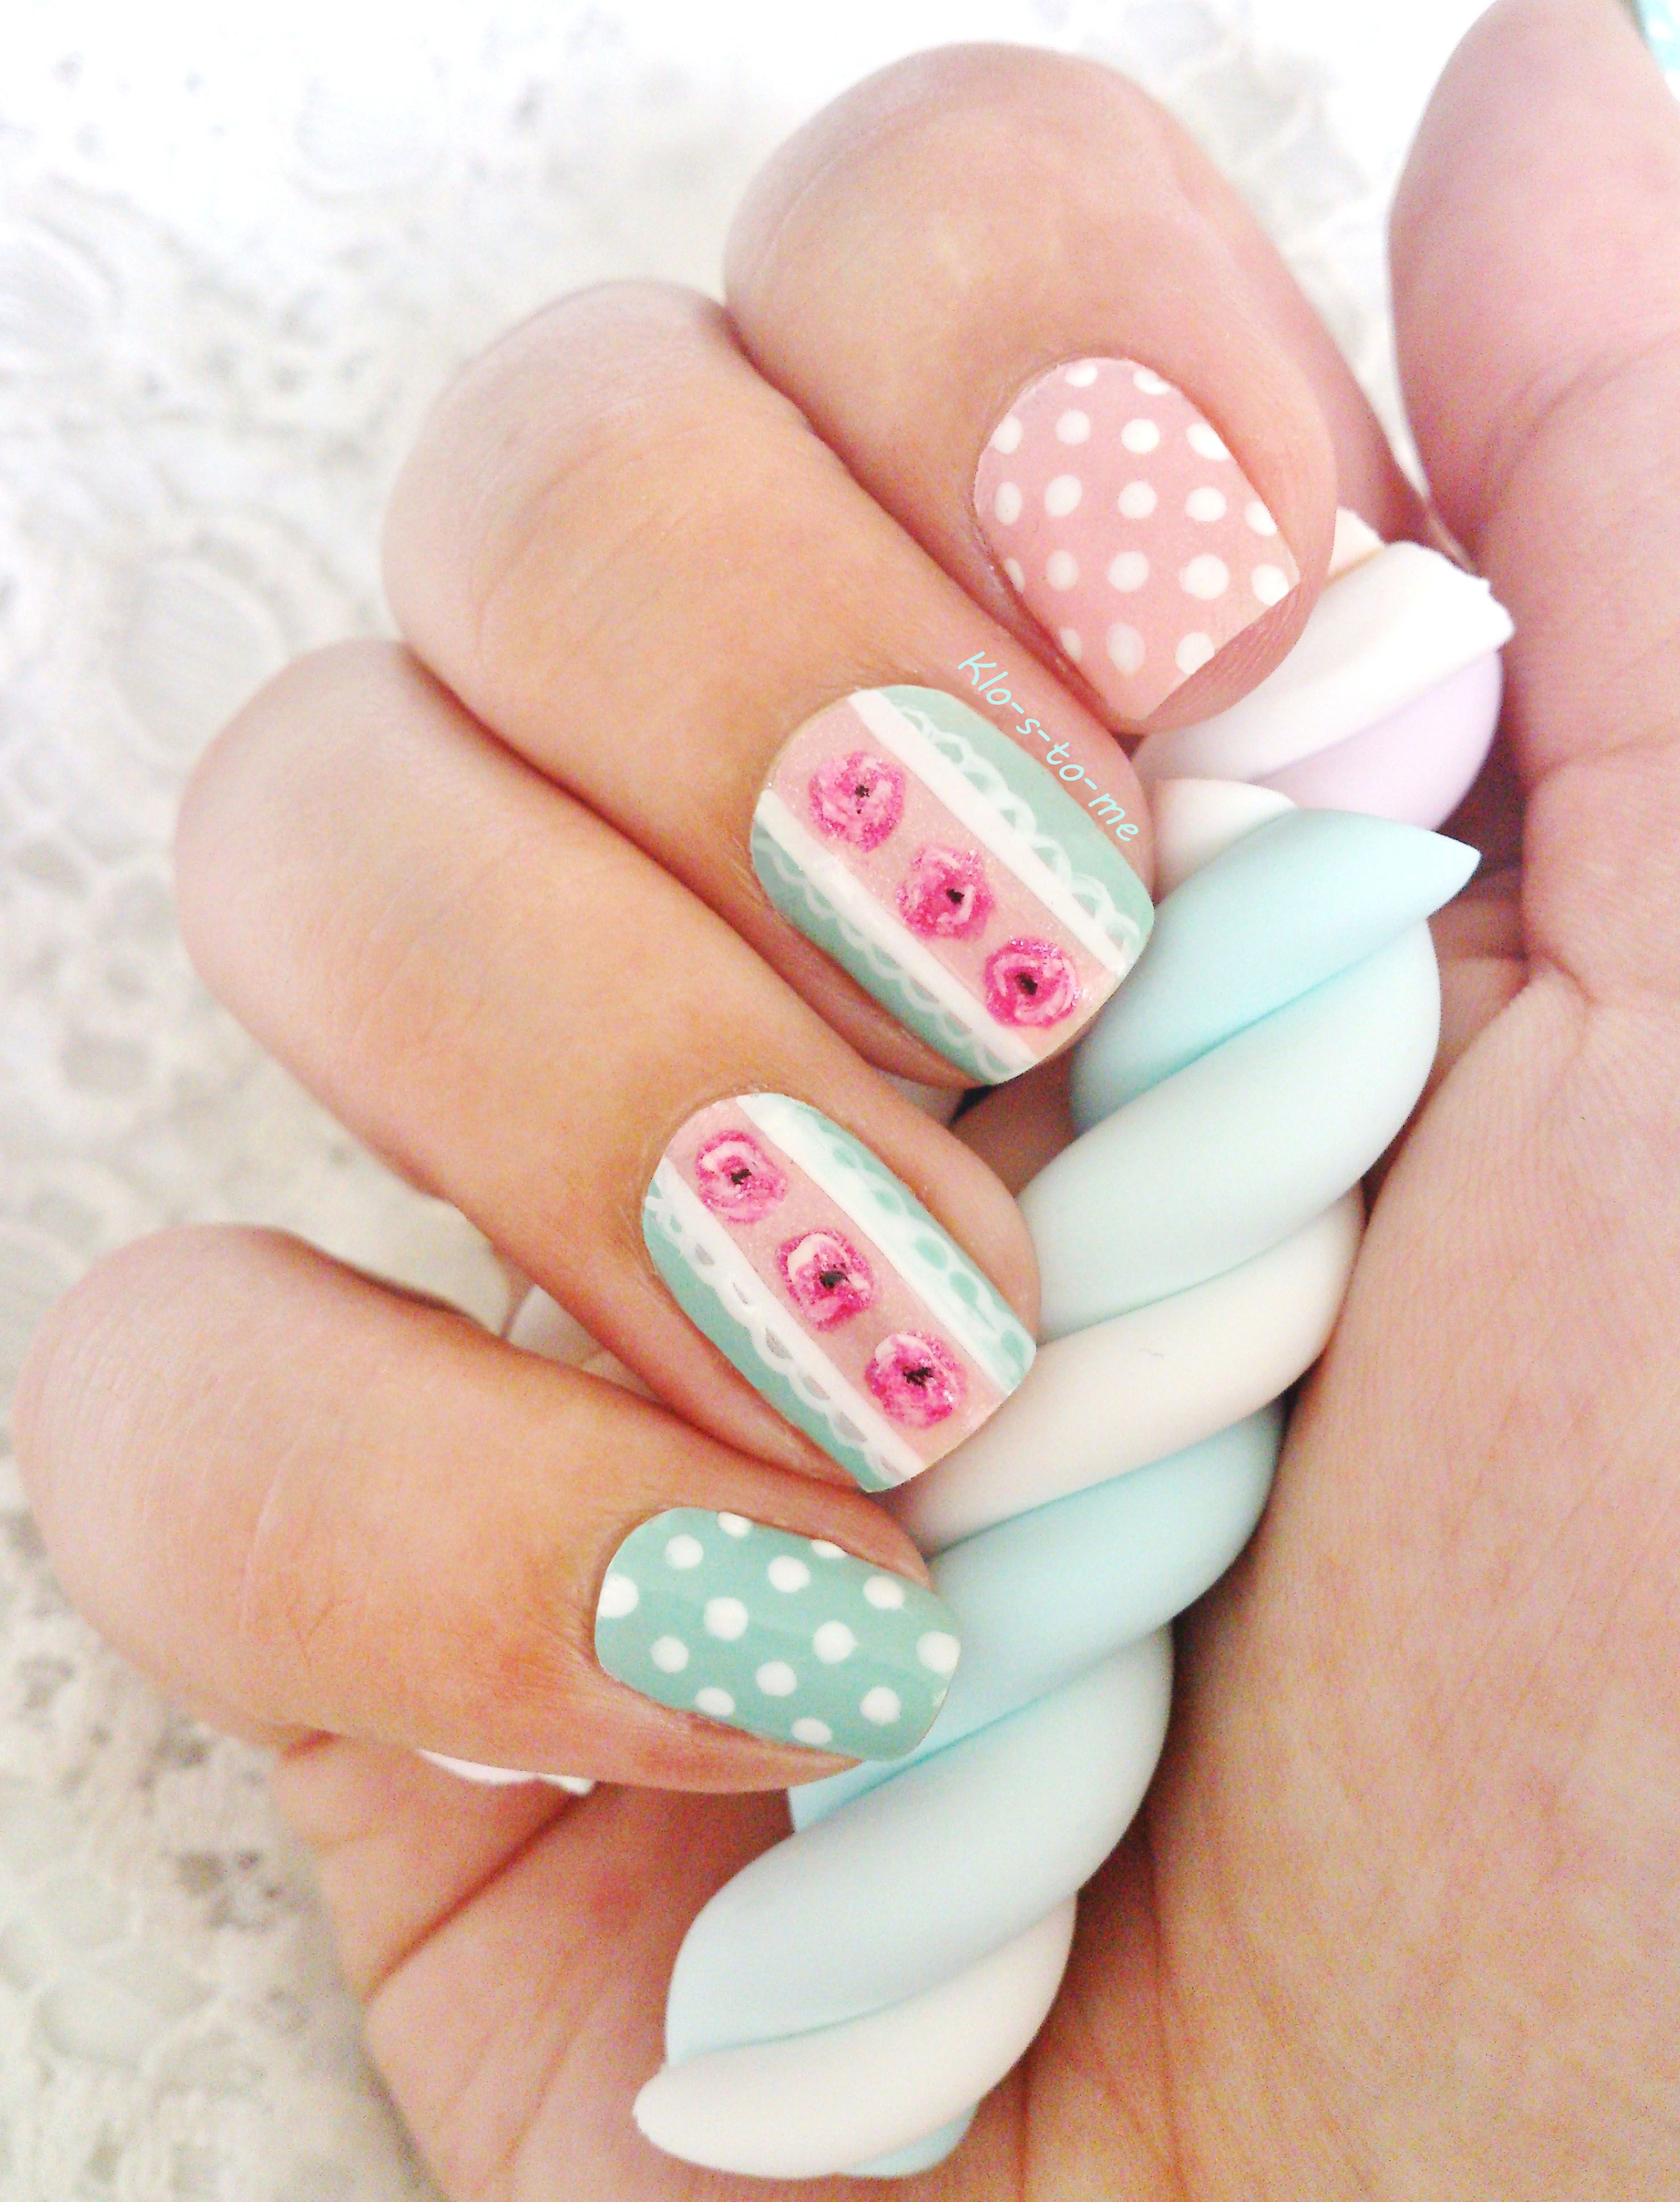 Pin by gudy lenne on uñas pinterest china glaze minis and glaze